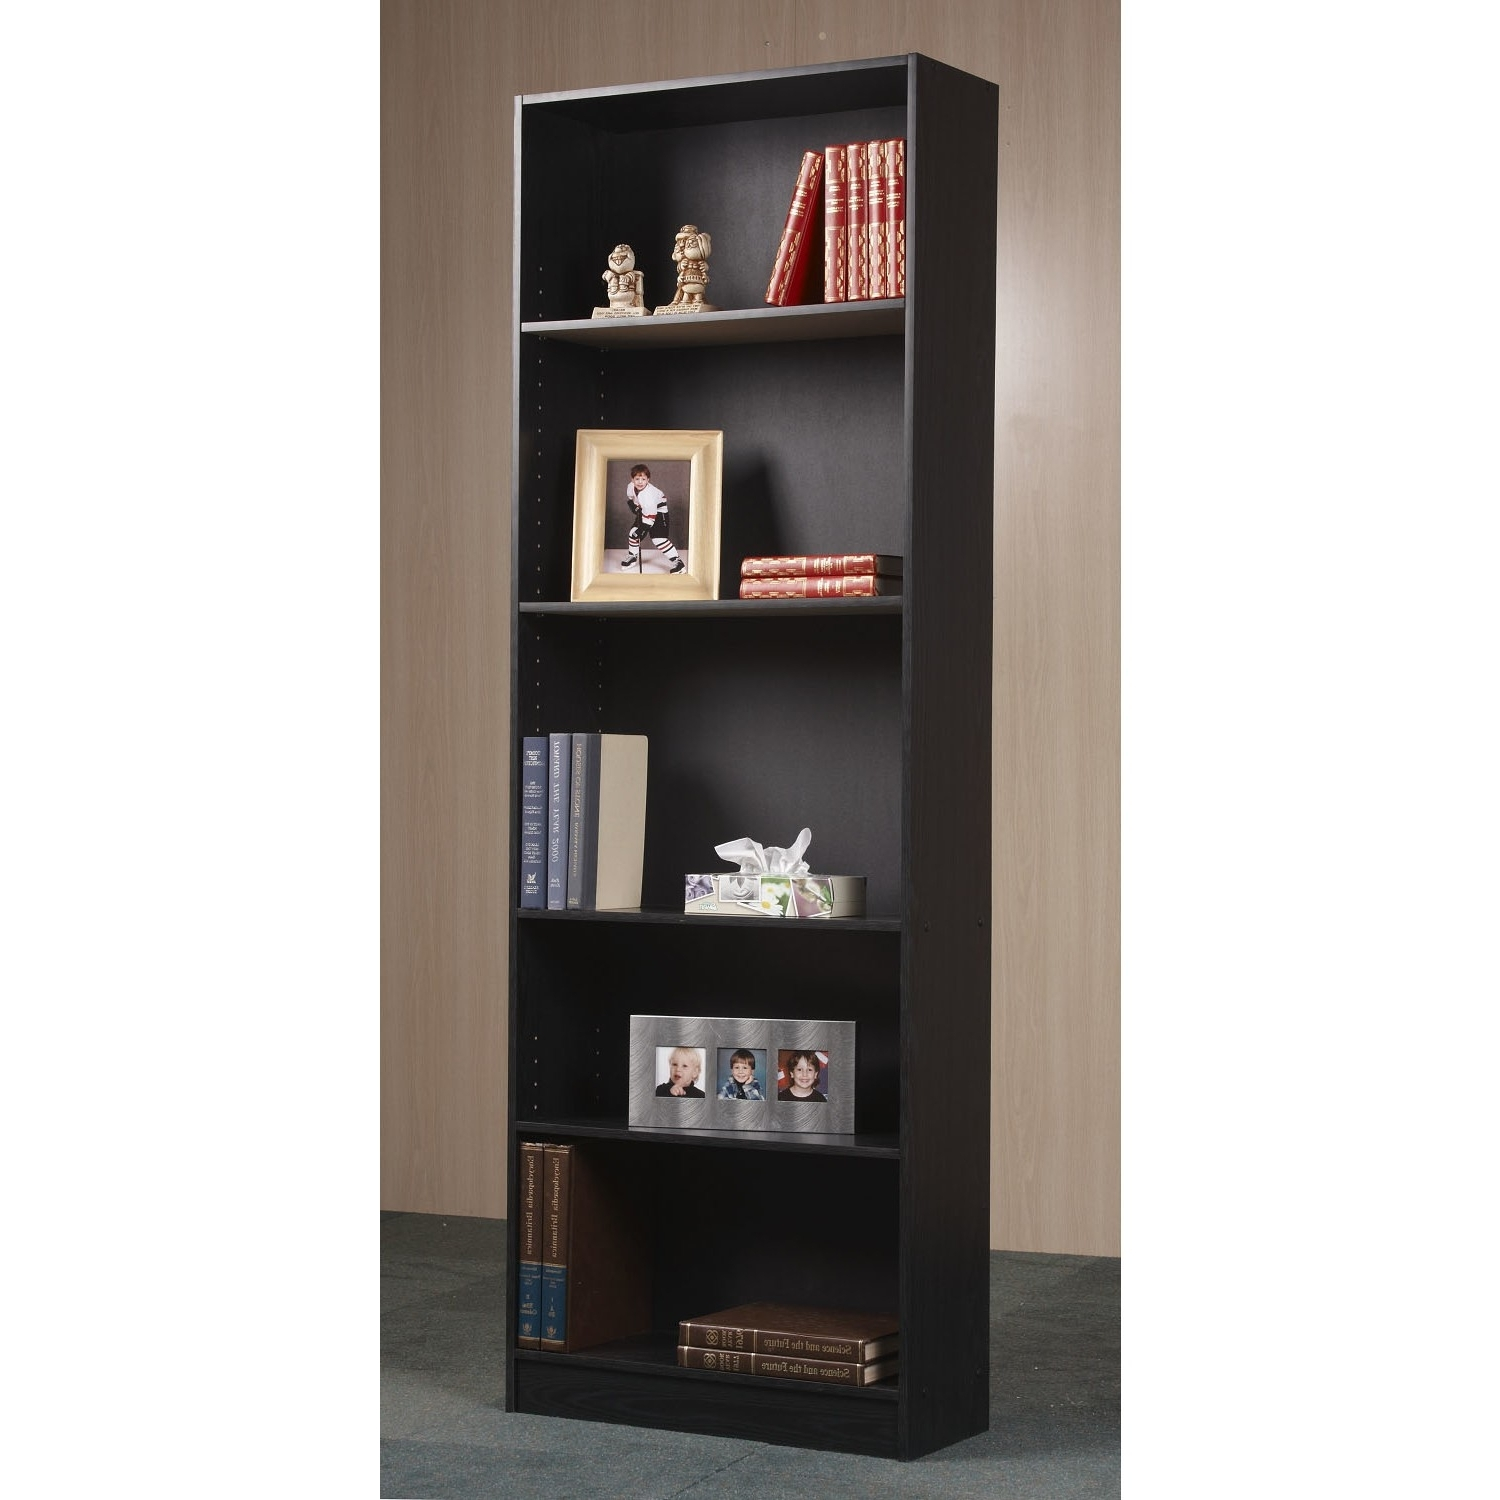 """Widely Used Room Essentials 3 Shelf Bookcases With Awesome Collection Of 3 Shelf Bookcase Room Essentialsâ""""¢ Tar With (View 15 of 15)"""